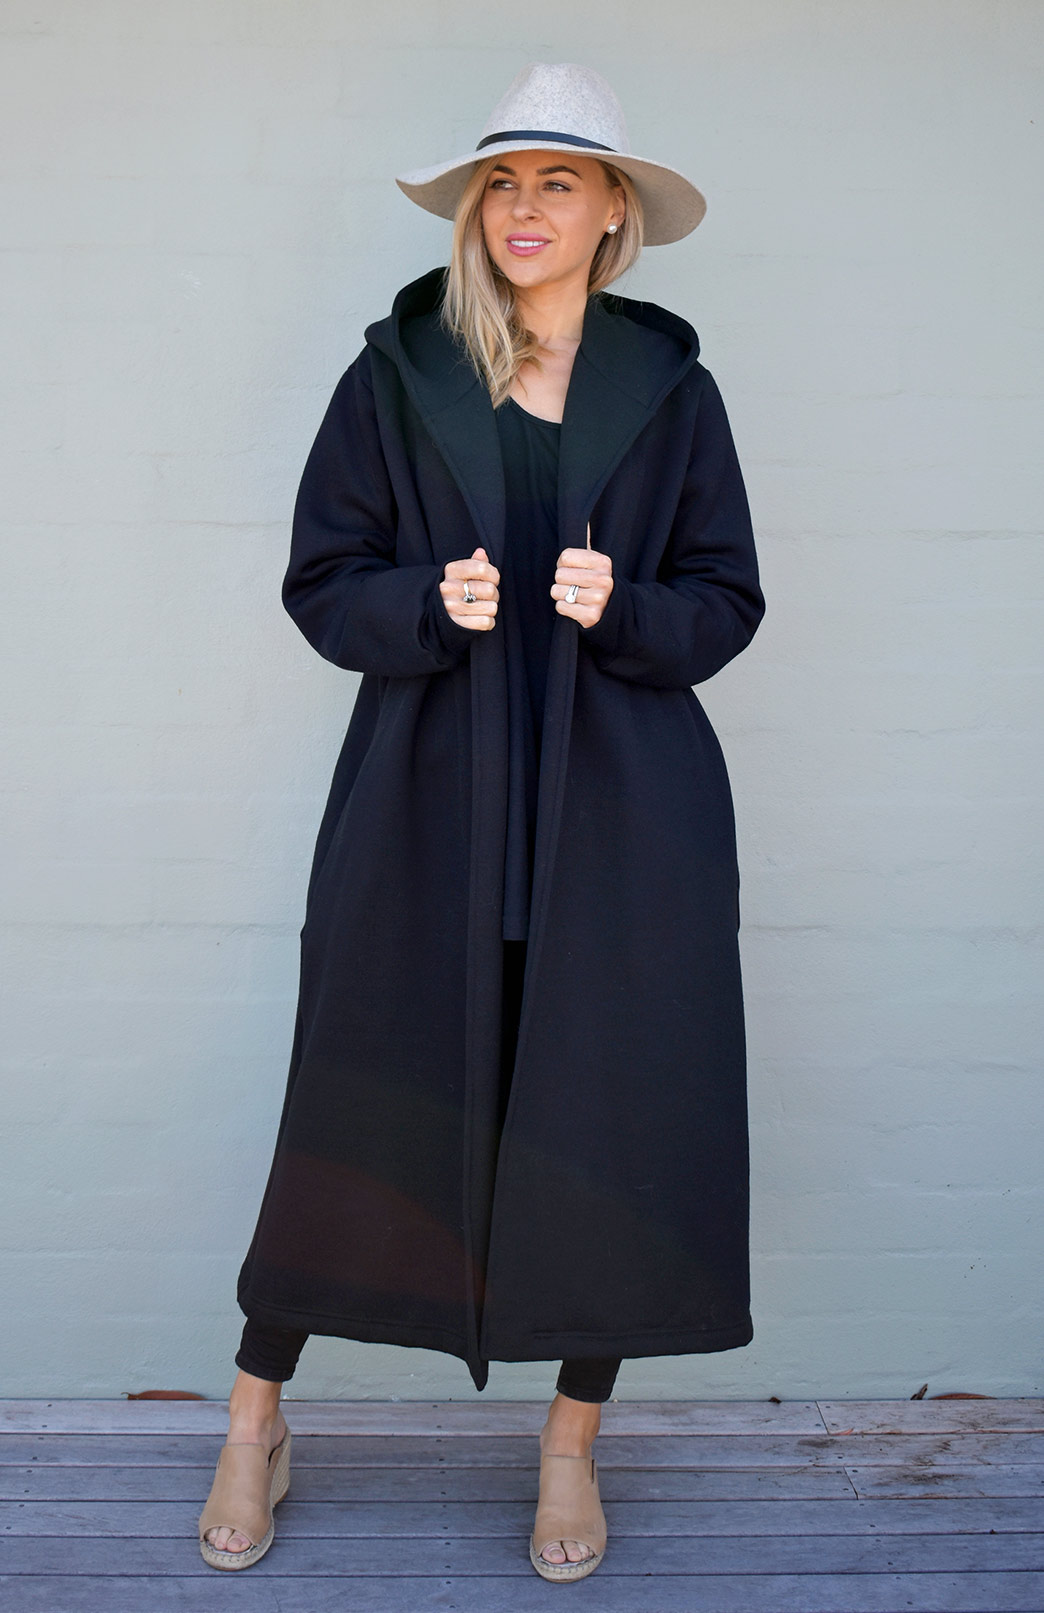 Potter Coat - Women's - Women's Black Pure Merino Wool Winter Coat with Side Pockets, Fleece Lining and Hood - Smitten Merino Tasmania Australia